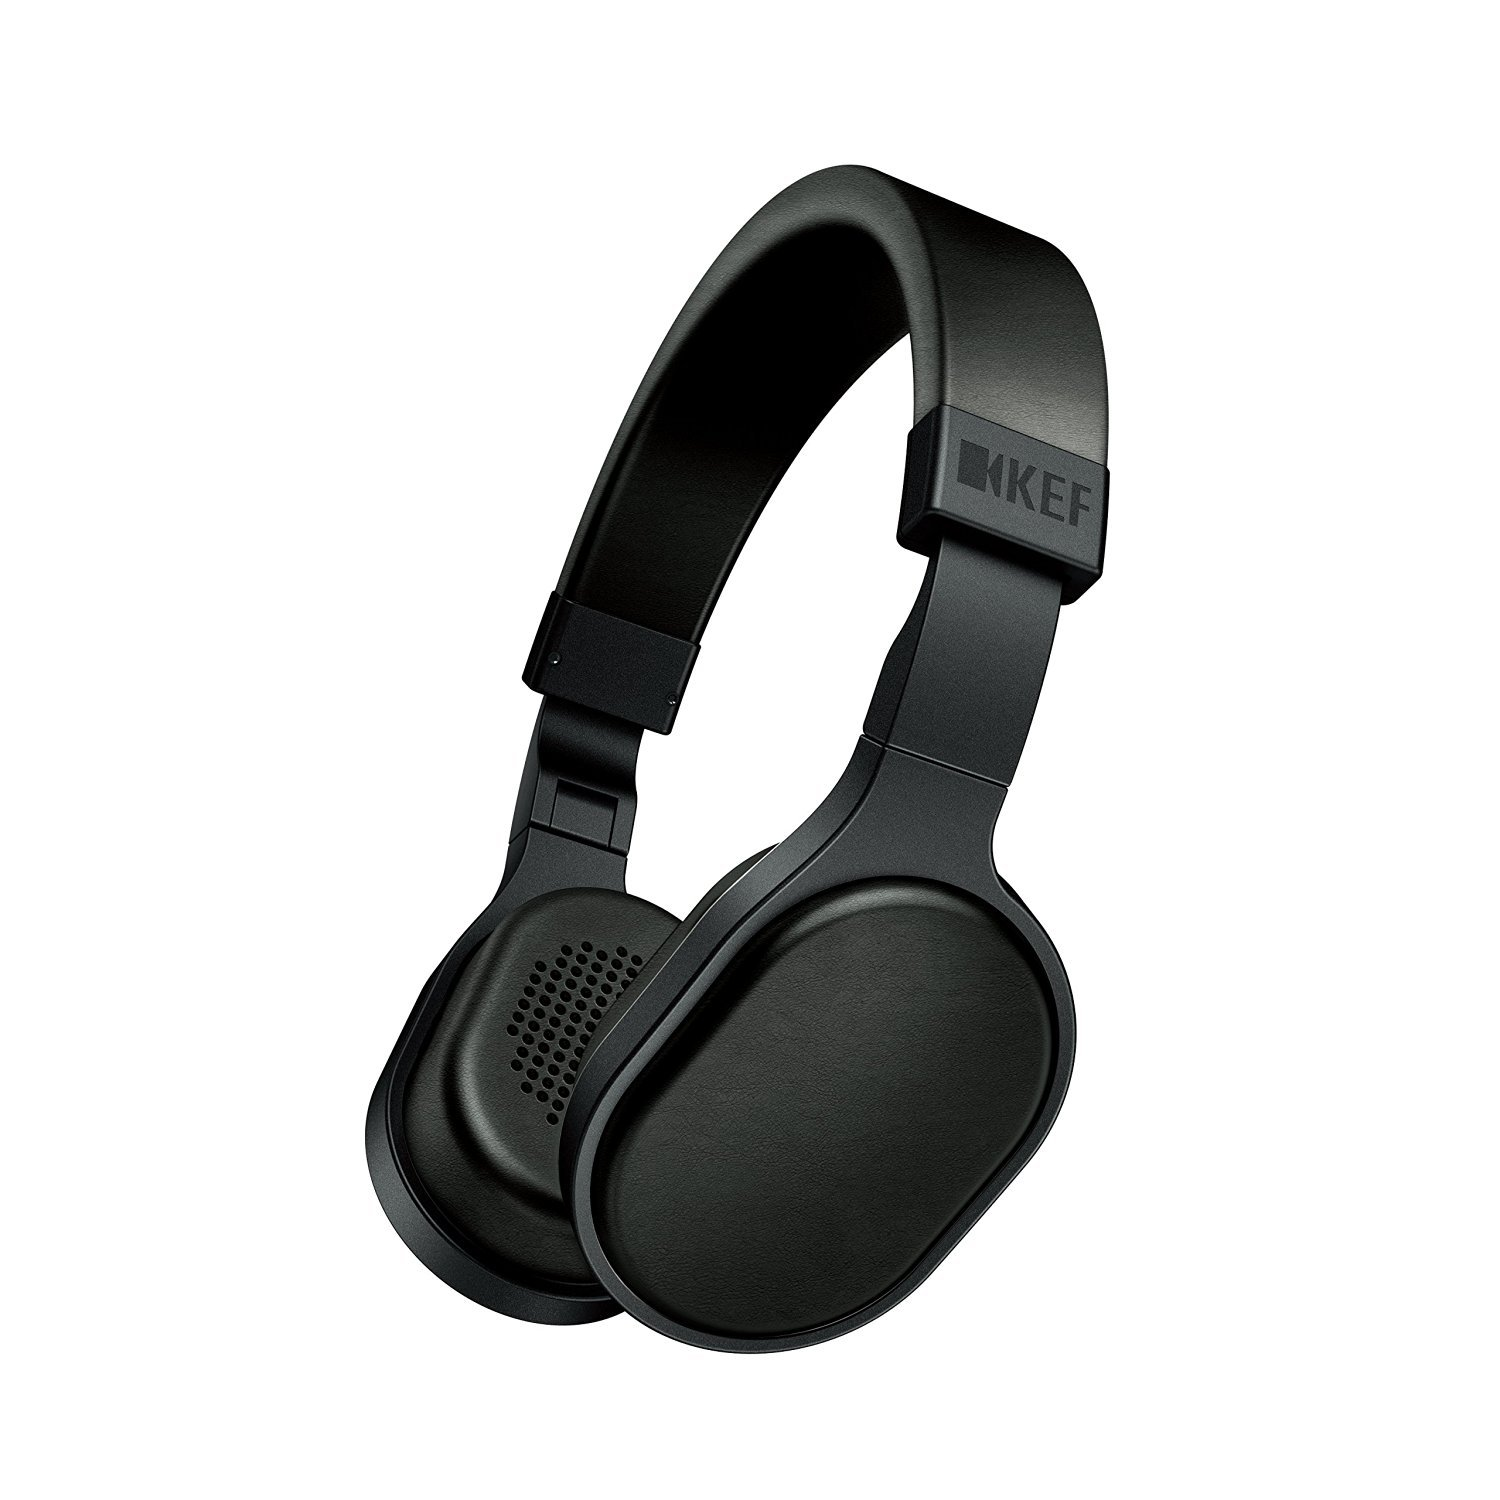 kef m400. amazon.com: kef m500 hi-fi on-ear headphones - black: home audio \u0026 theater kef m400